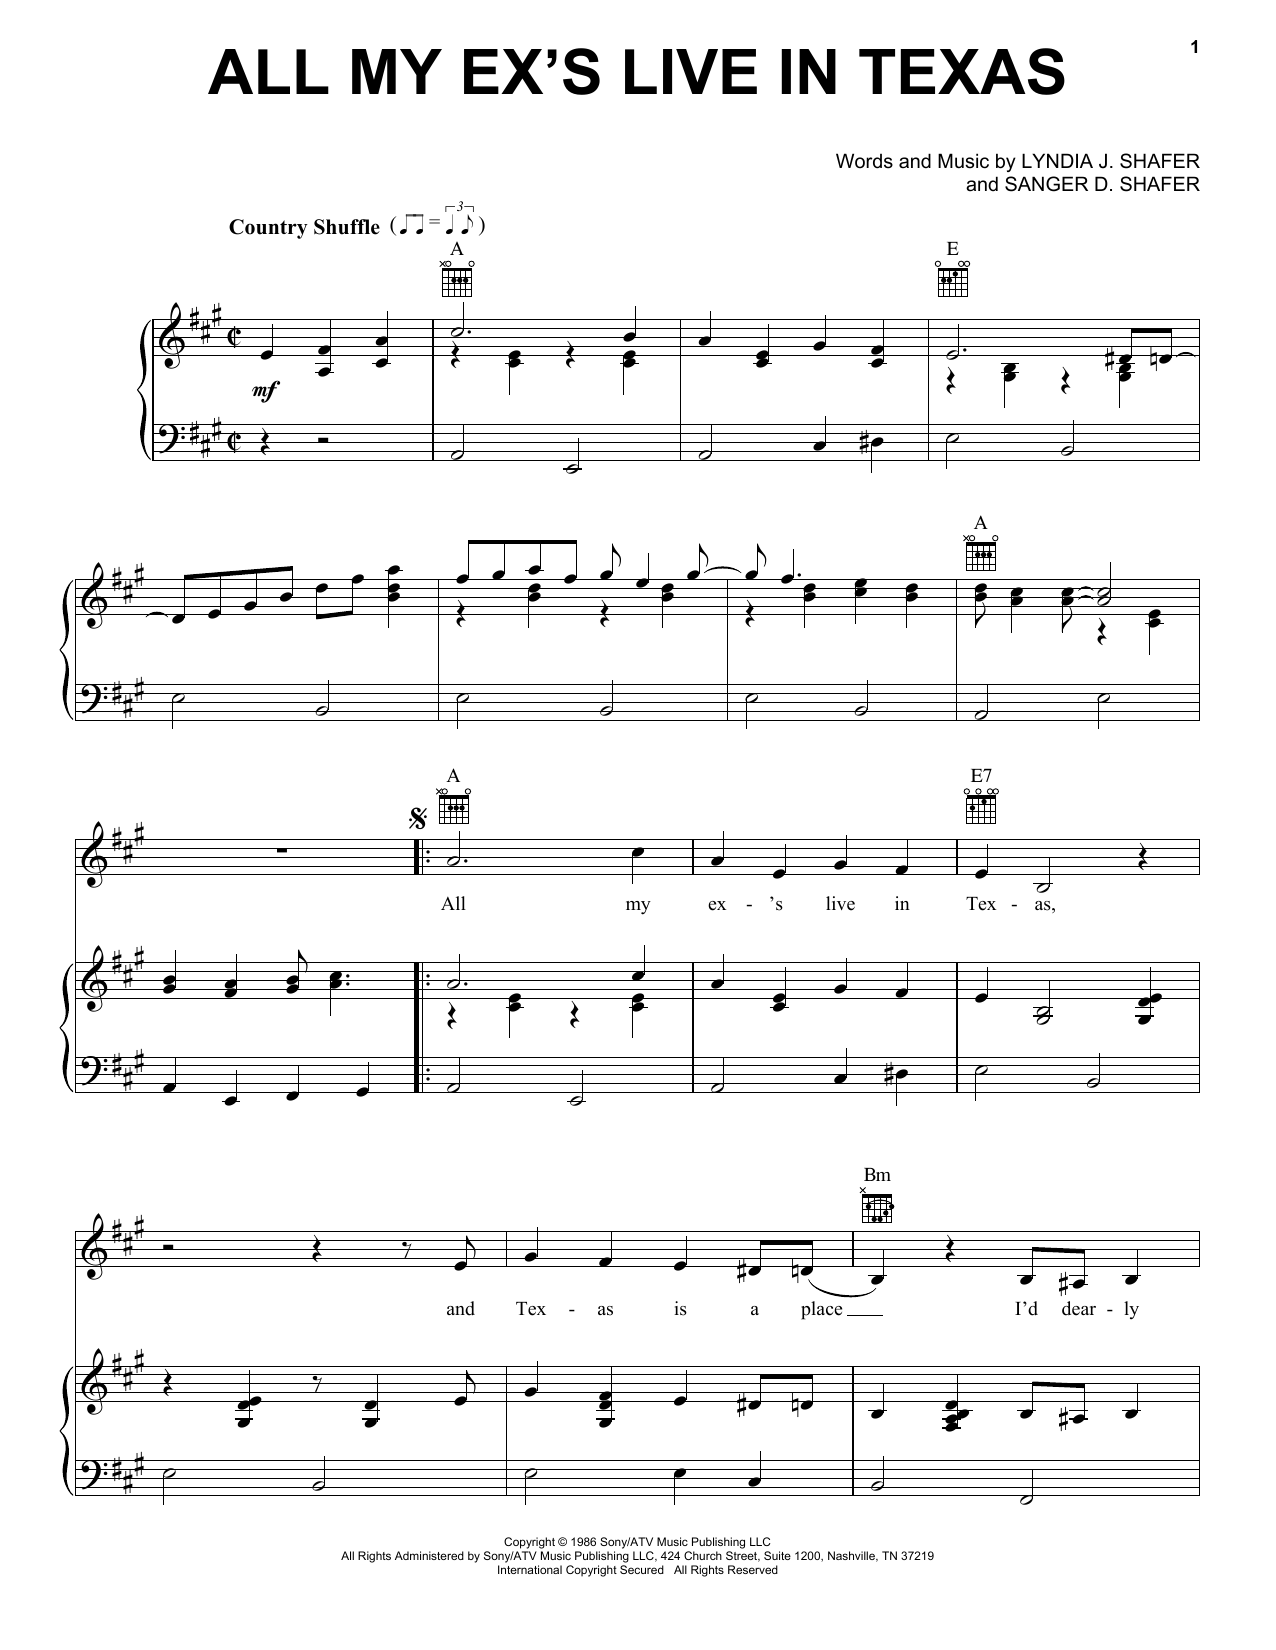 George Strait All My Ex's Live In Texas sheet music notes and chords. Download Printable PDF.